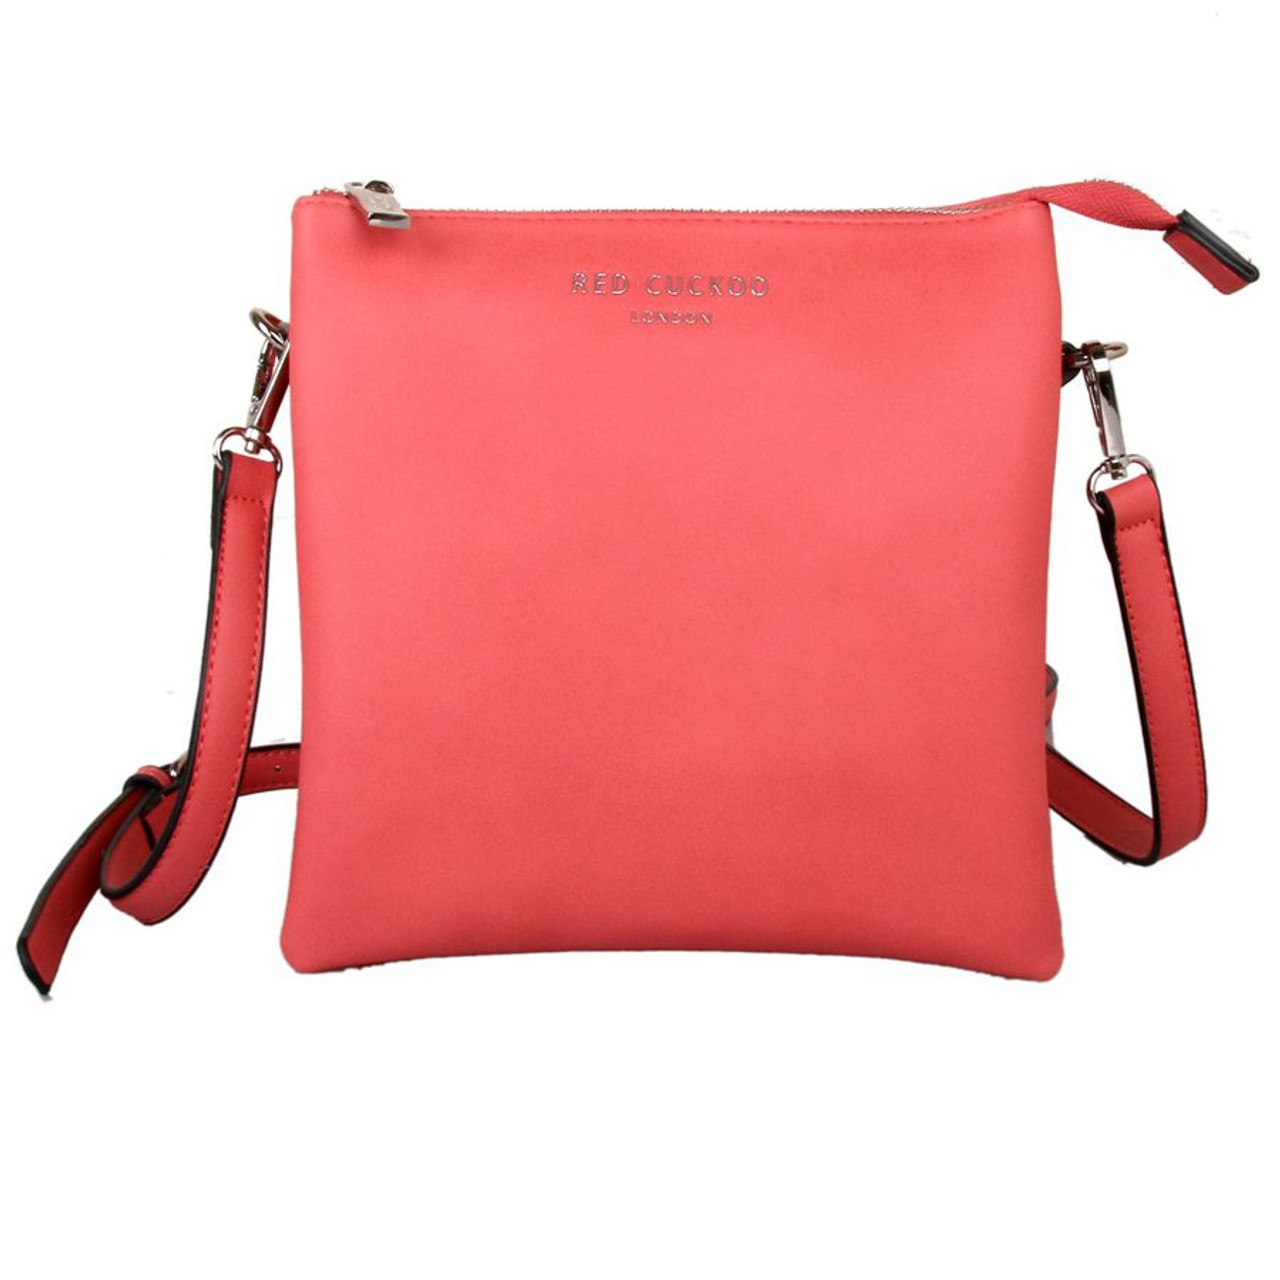 e11a1bc7b38d5 Red Cuckoo Coral Tall Cross Body Bag - Itsy Bitsy Boutique